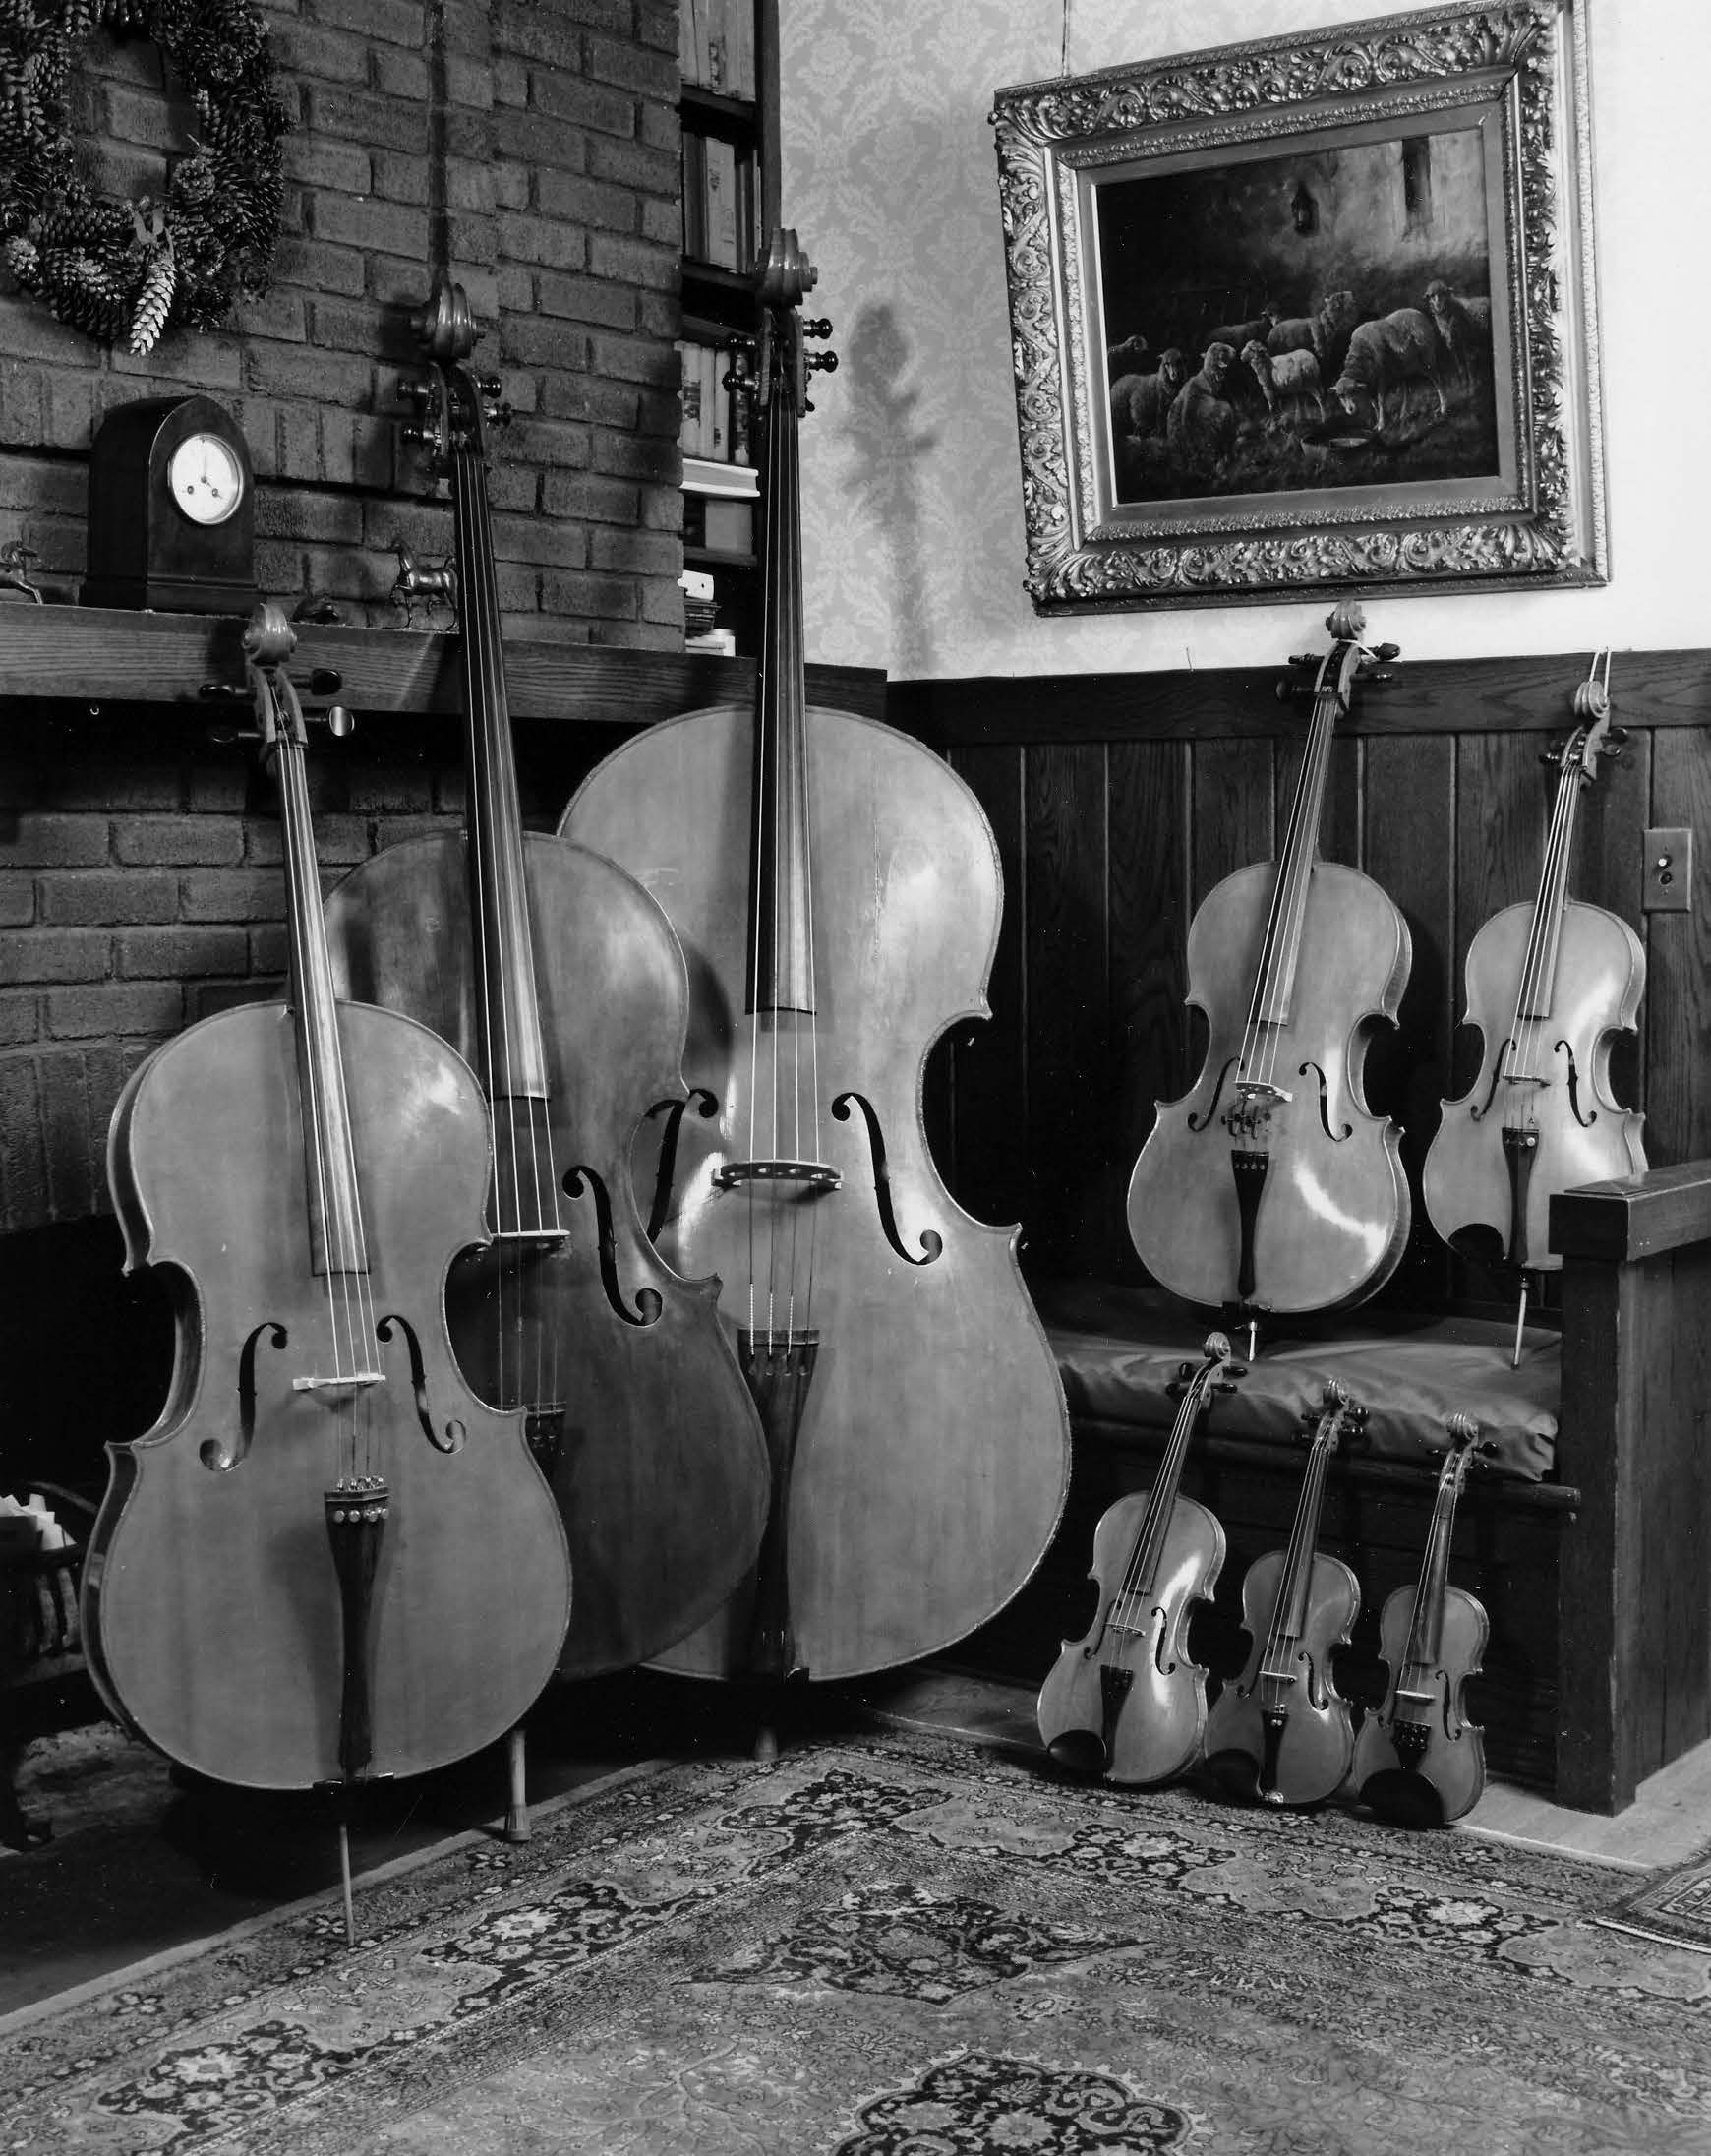 Carleen Hutchins' violin octet: a family of eight violins spanning the tonal range of a piano. Courtesy of the Hutchins estate